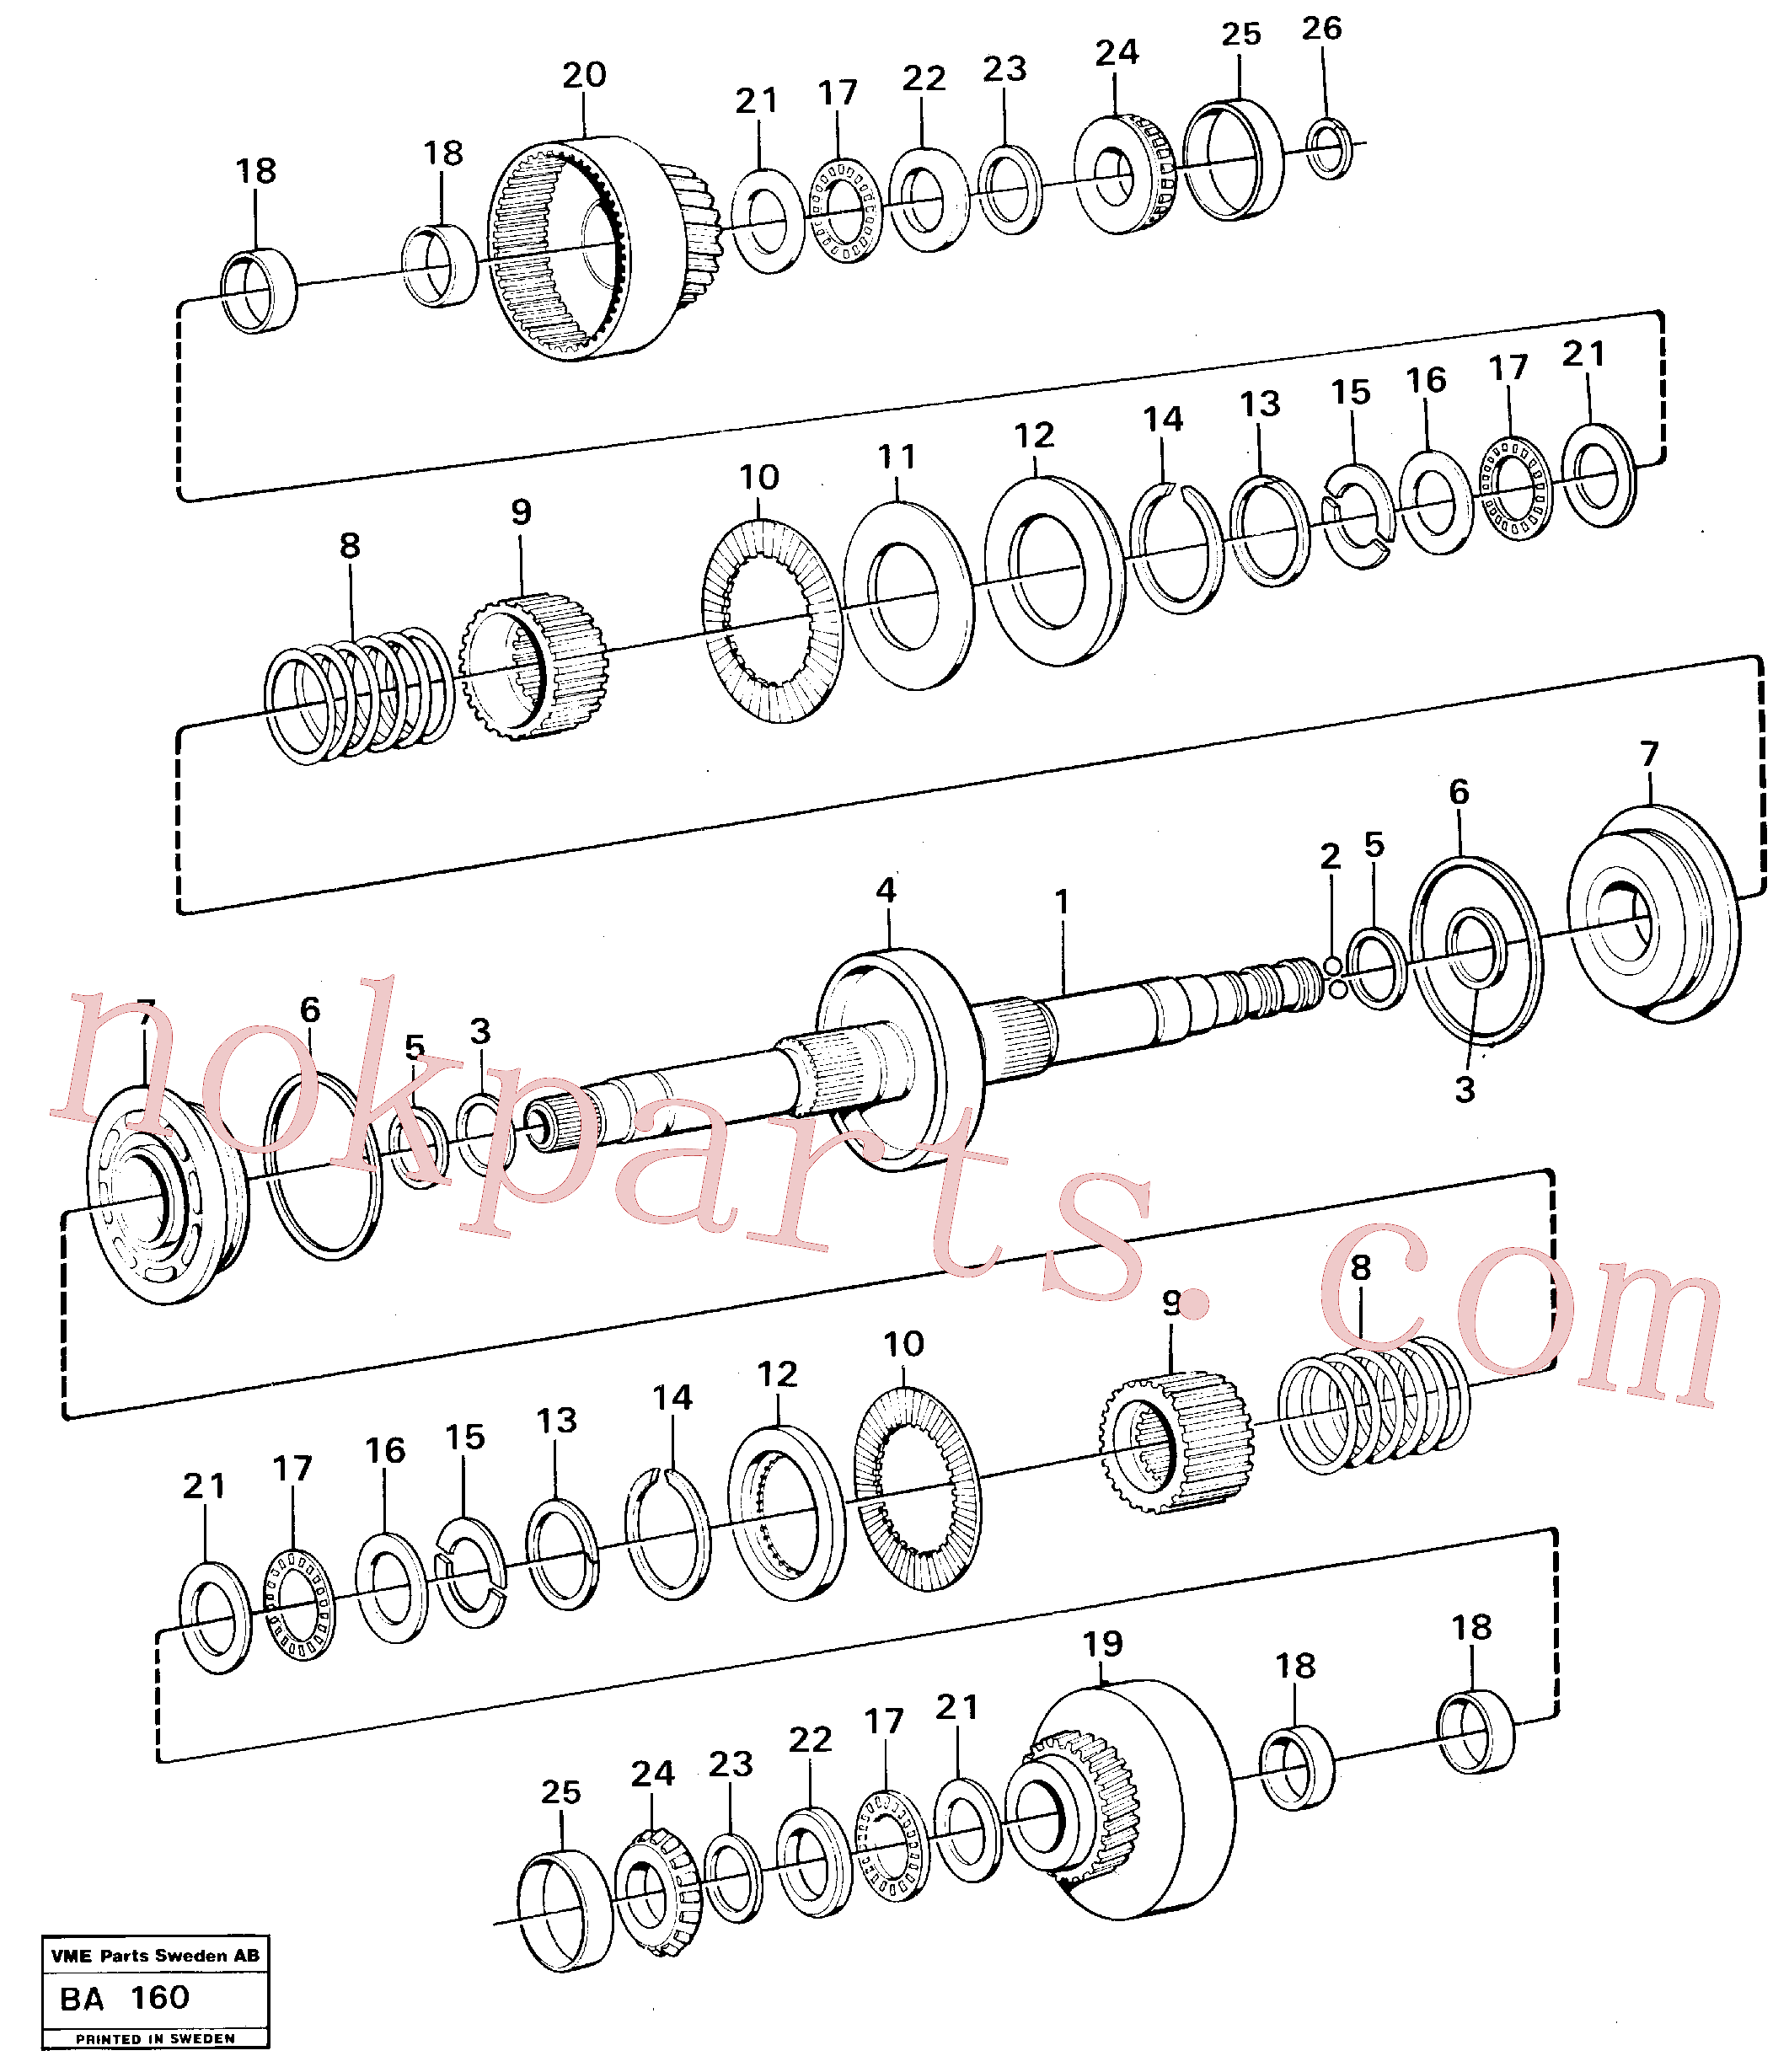 VOE11037270 for Volvo Clutches forward and reverse(BA160 assembly)